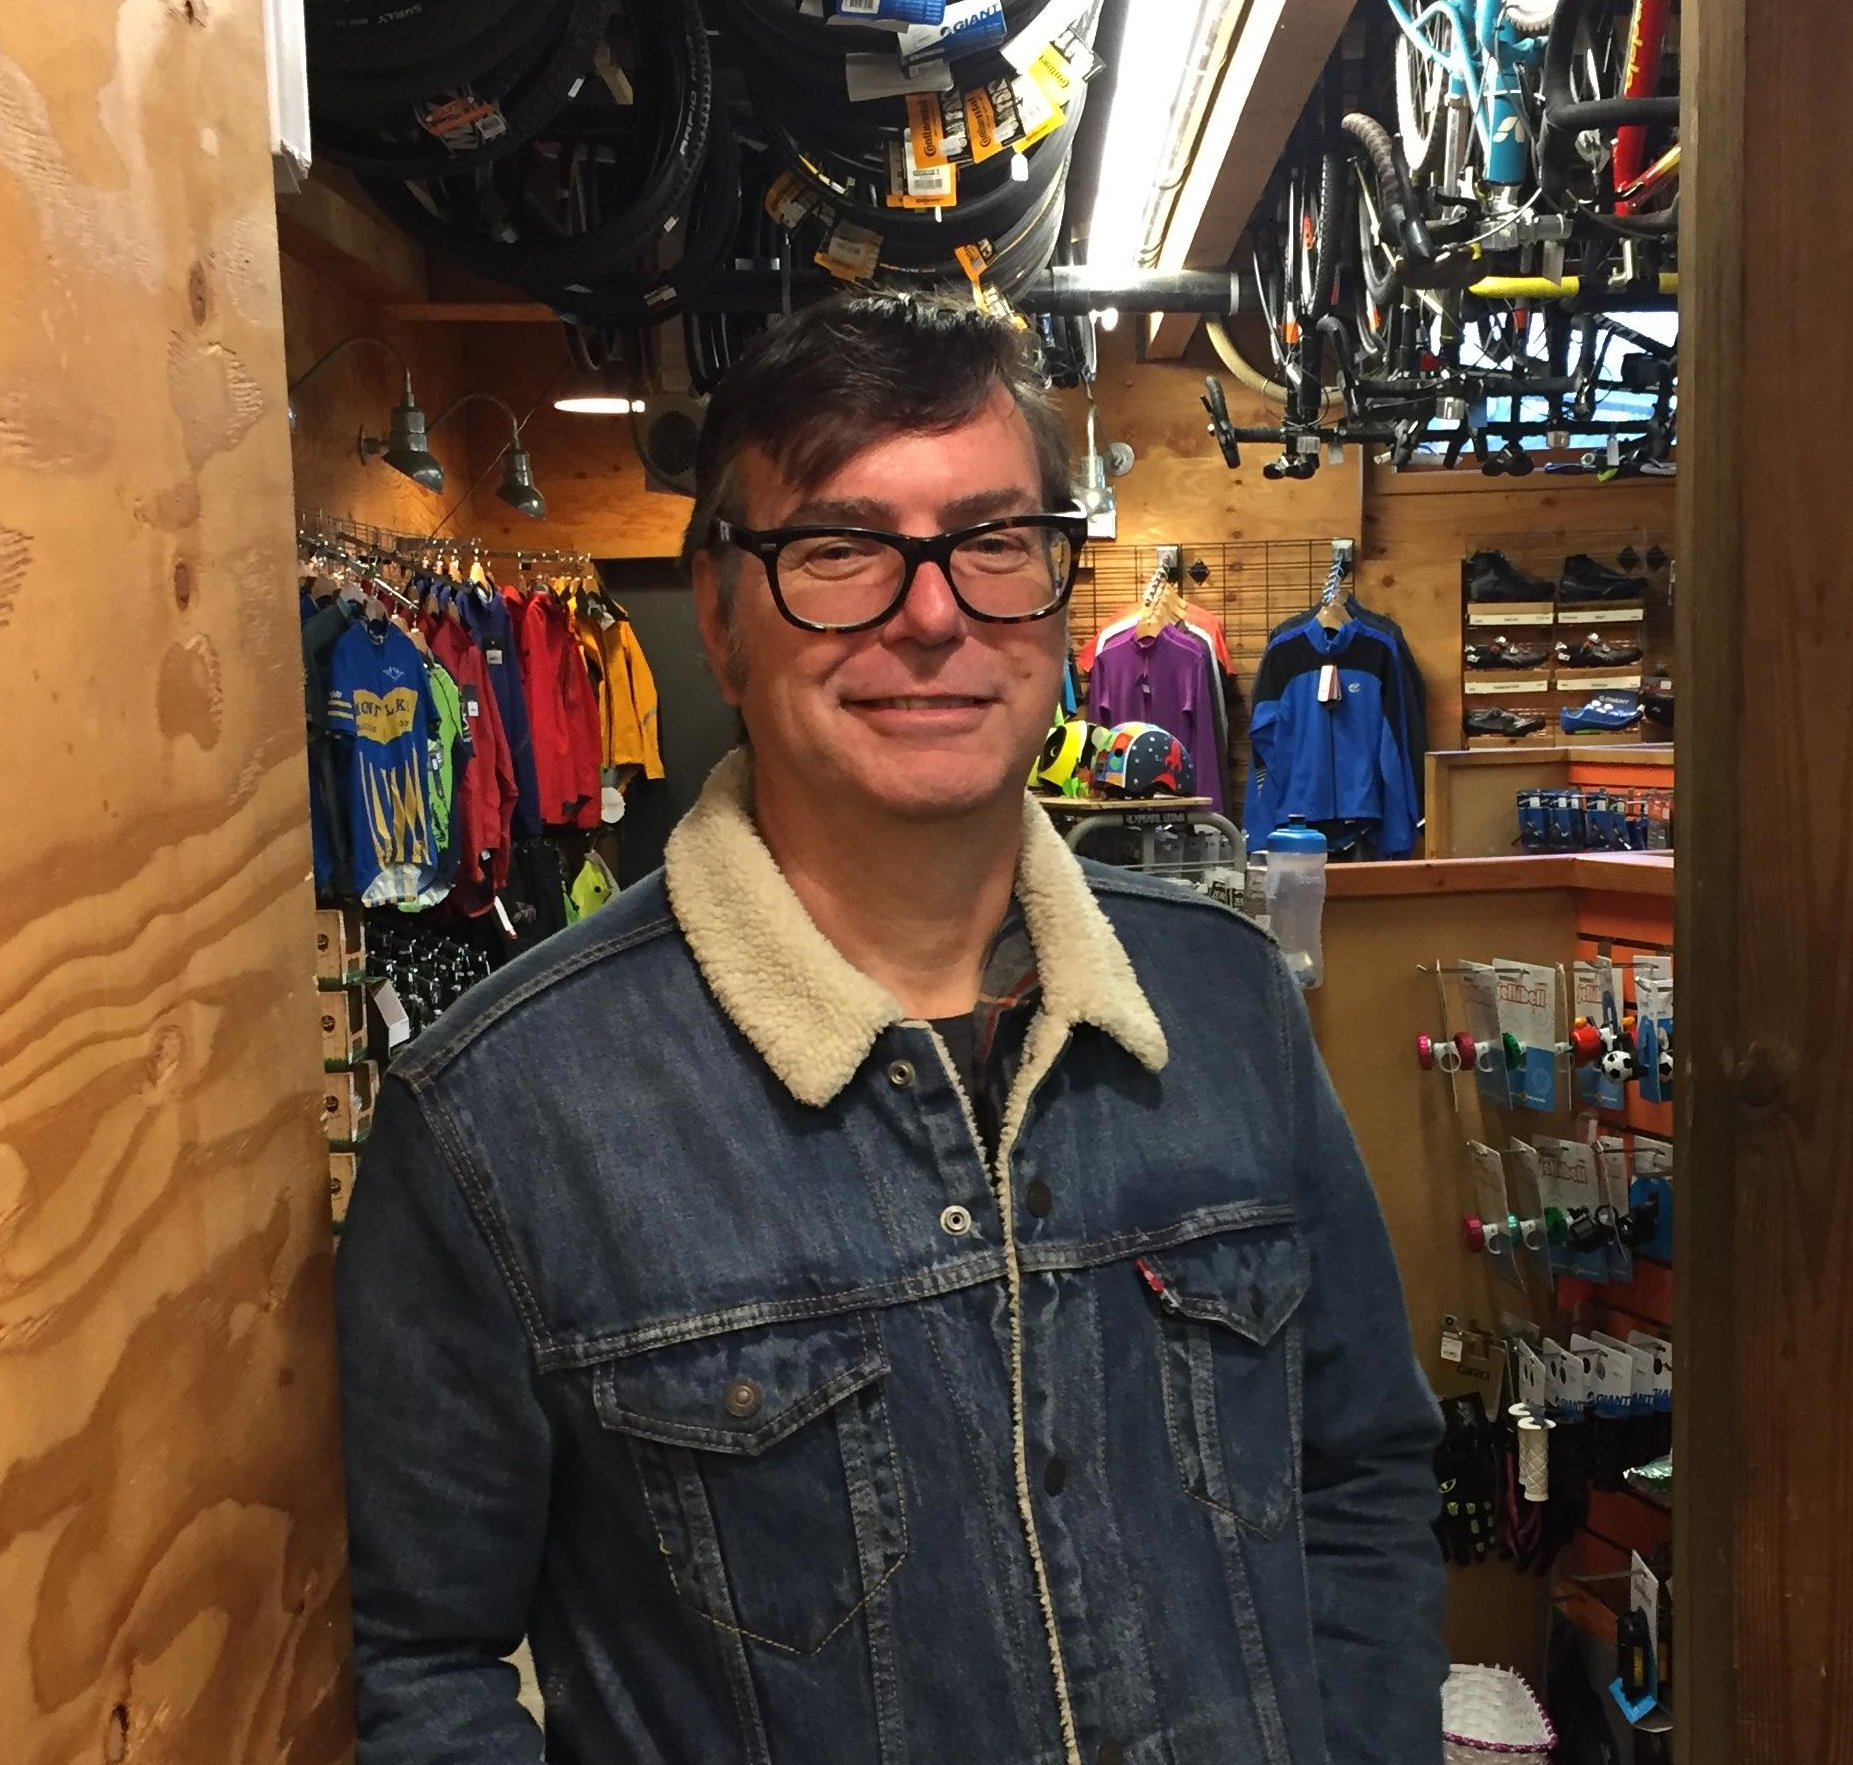 Brian Probart in on the sales floor looking handsome wearing a denim jacket and big square glasses